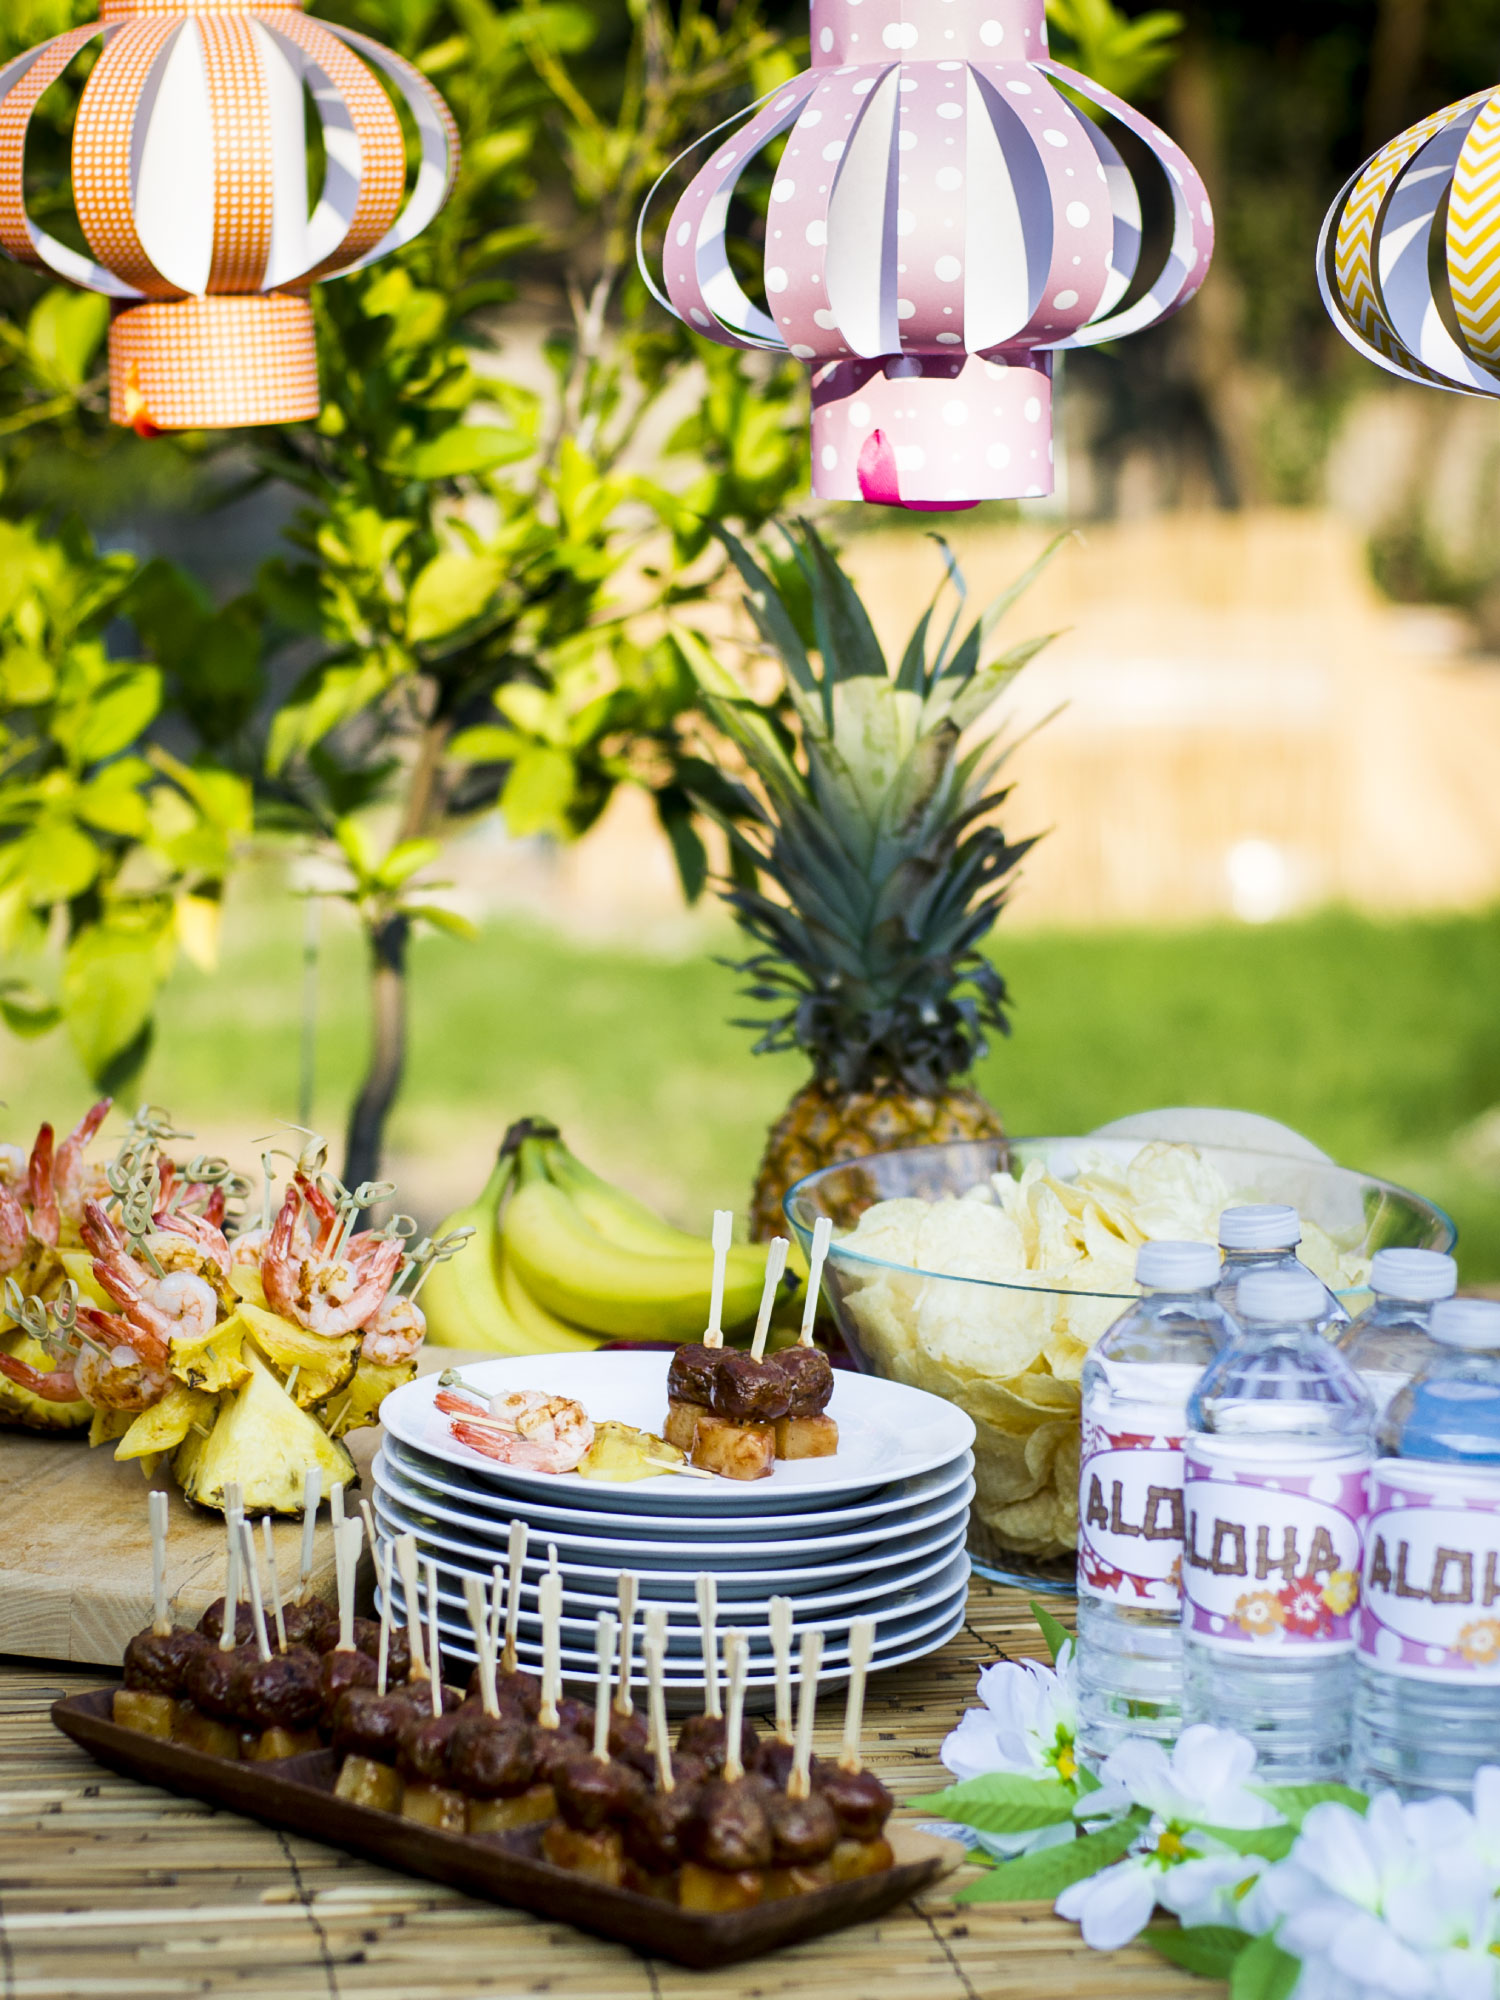 Throwing a Luau Party by Sam Henderson of Today's Nest for HGTVGardens